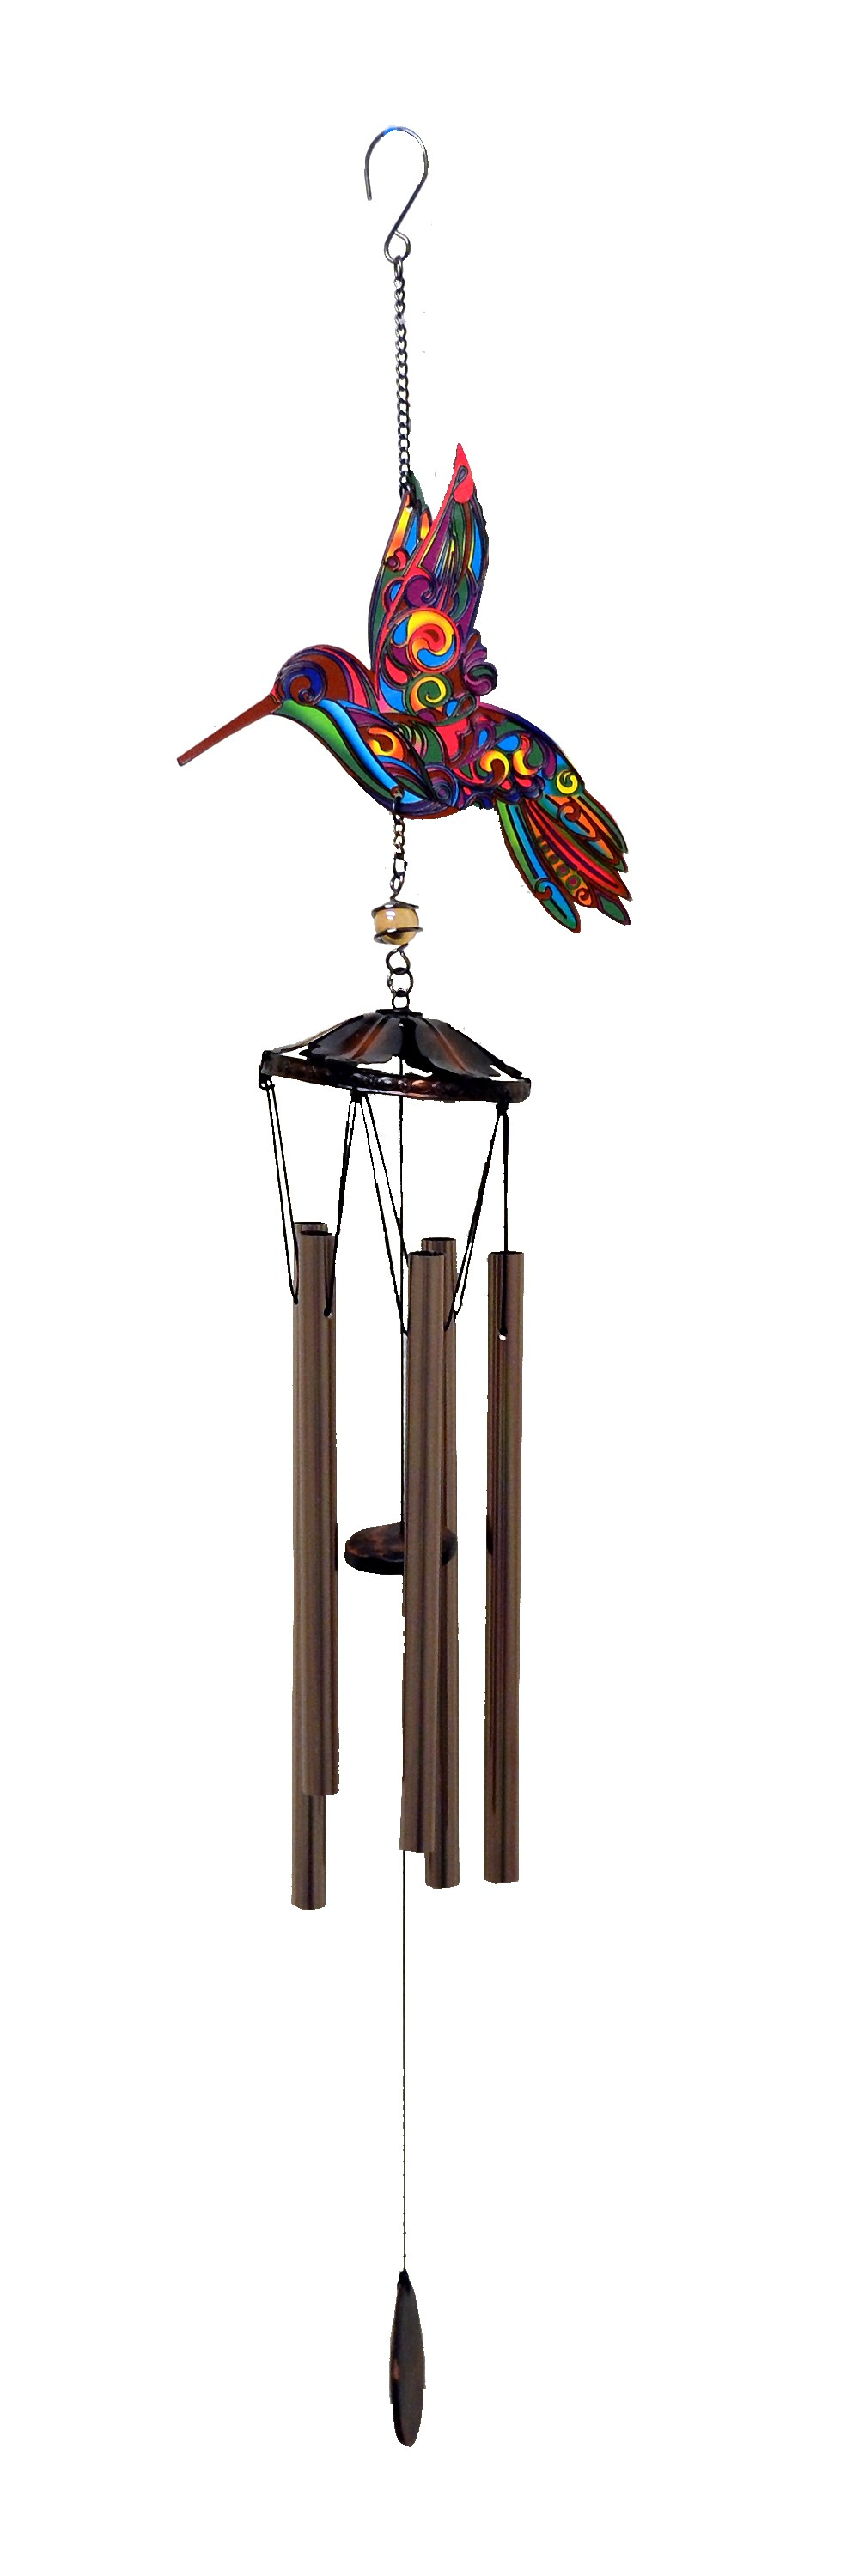 HBIRD BRAZILIAN STYLE PRINTED WIND CHIME